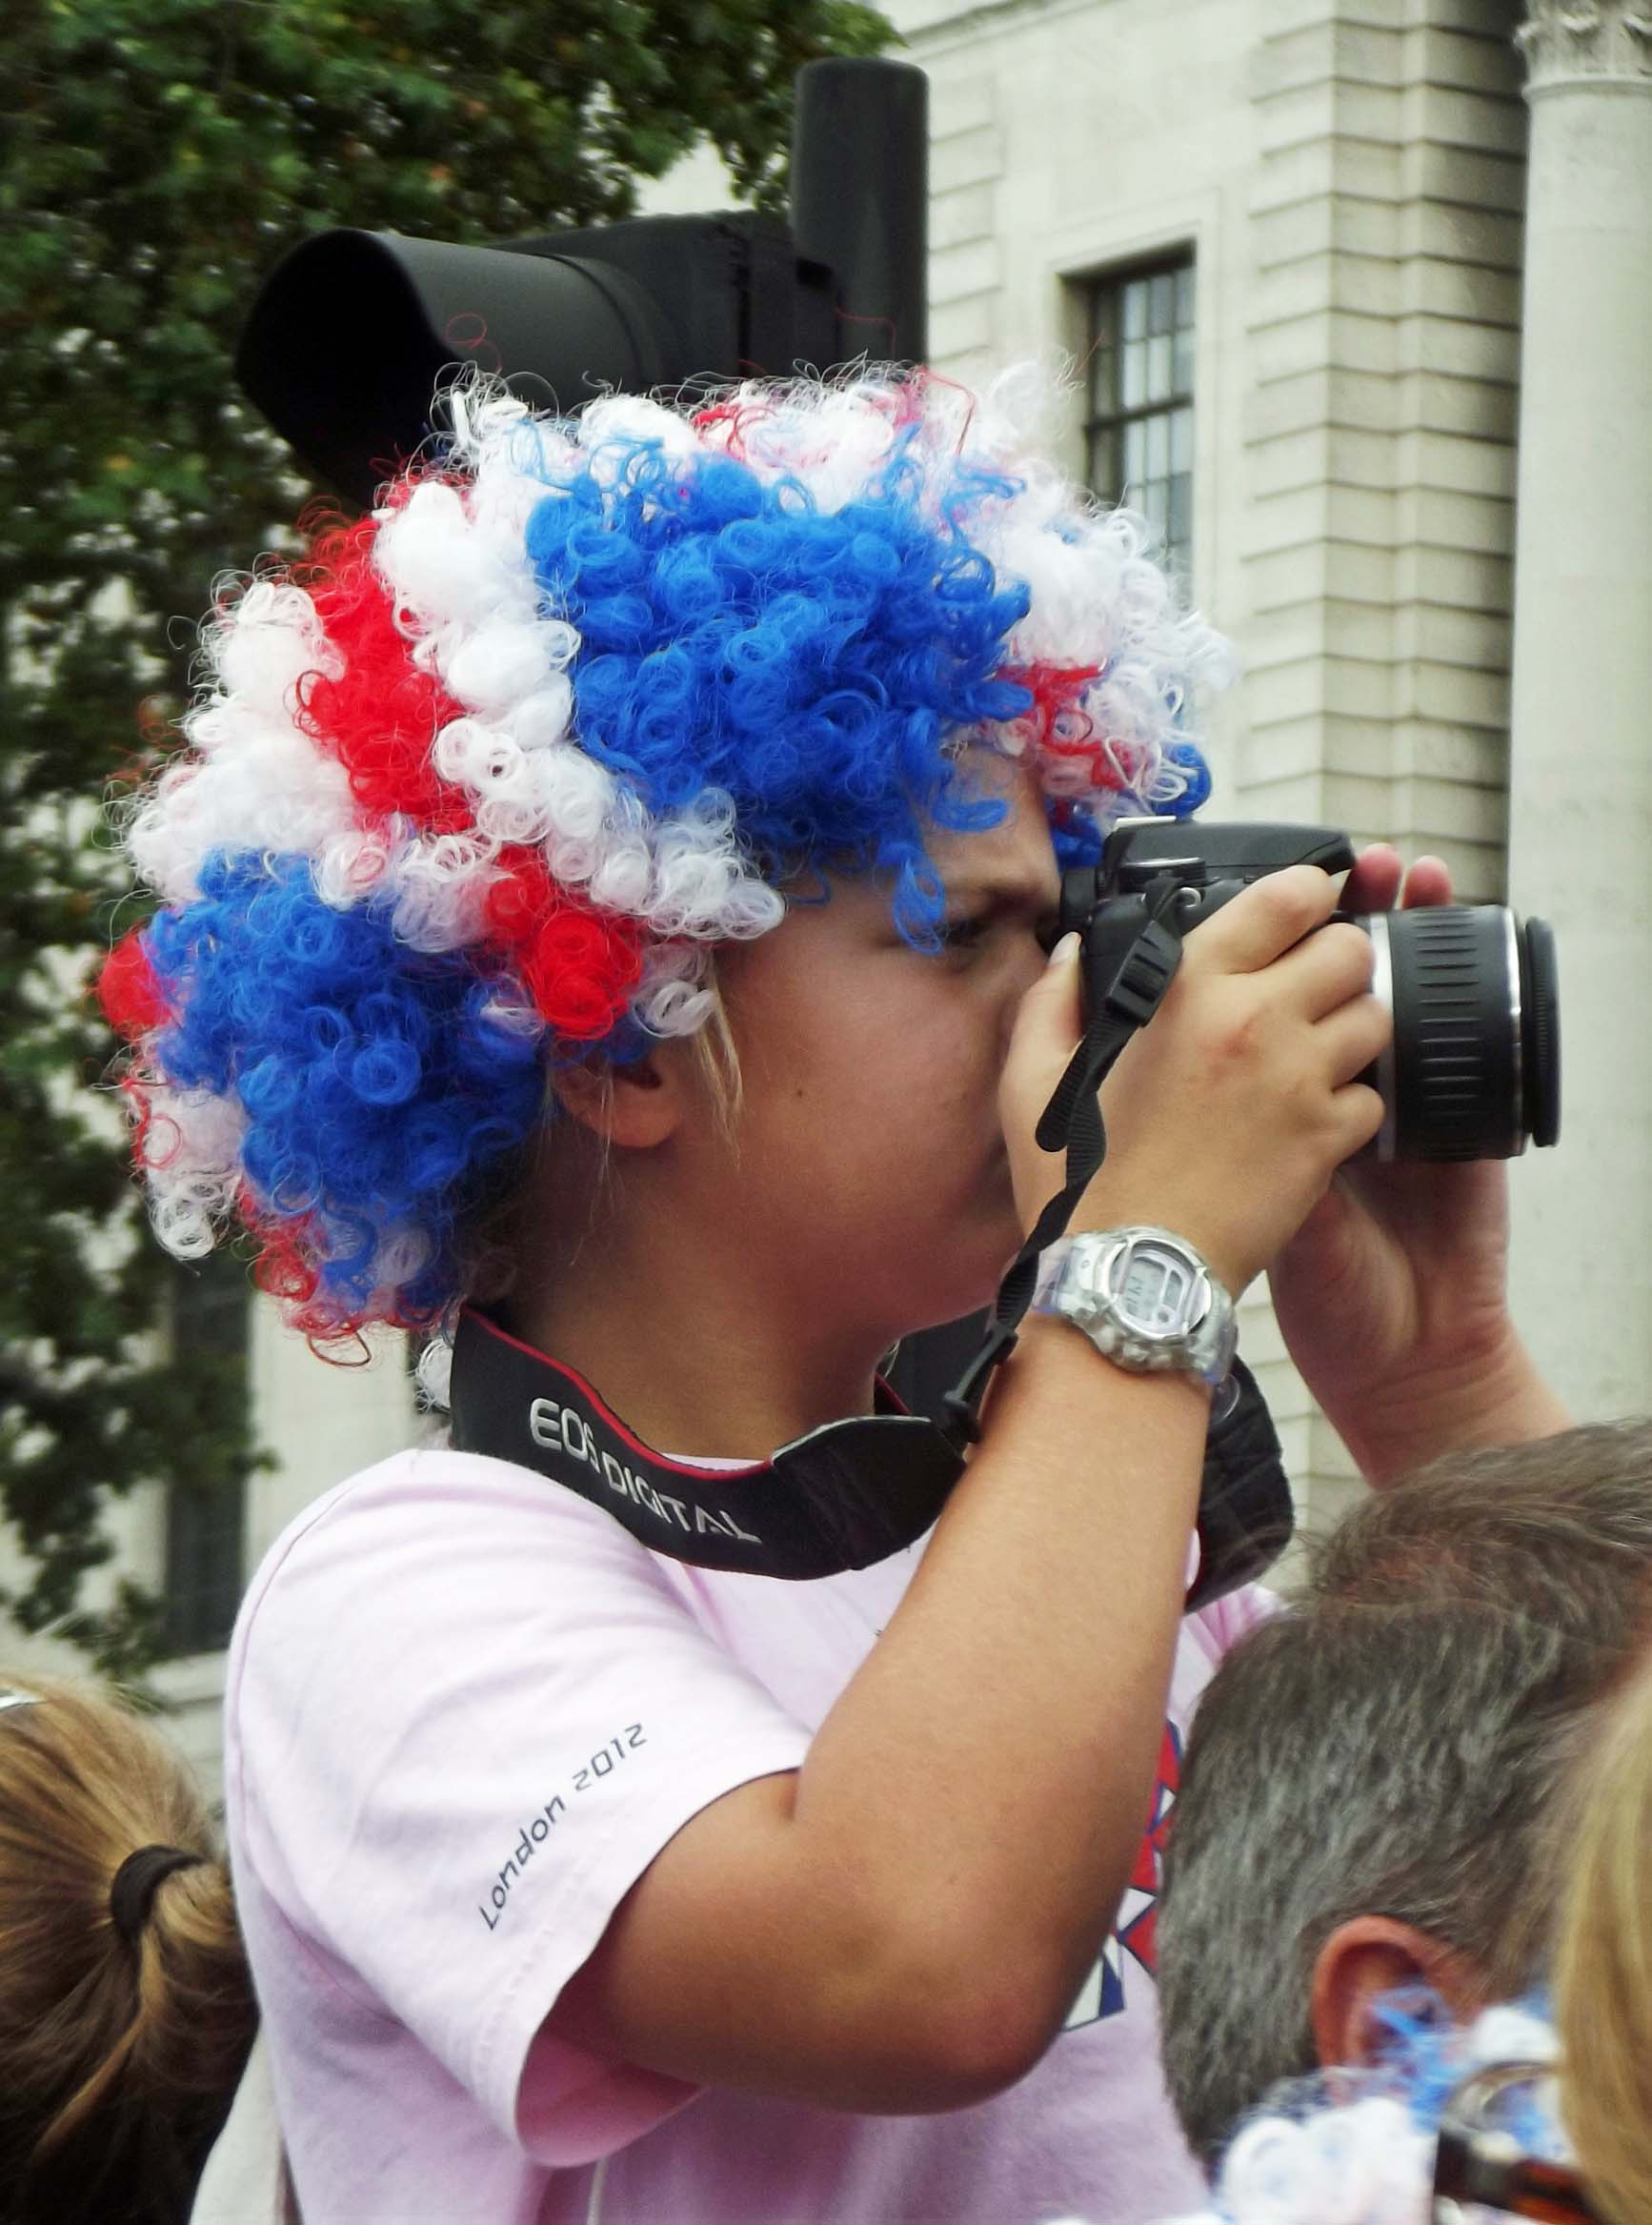 Young child with red, blue and white wig, and camera